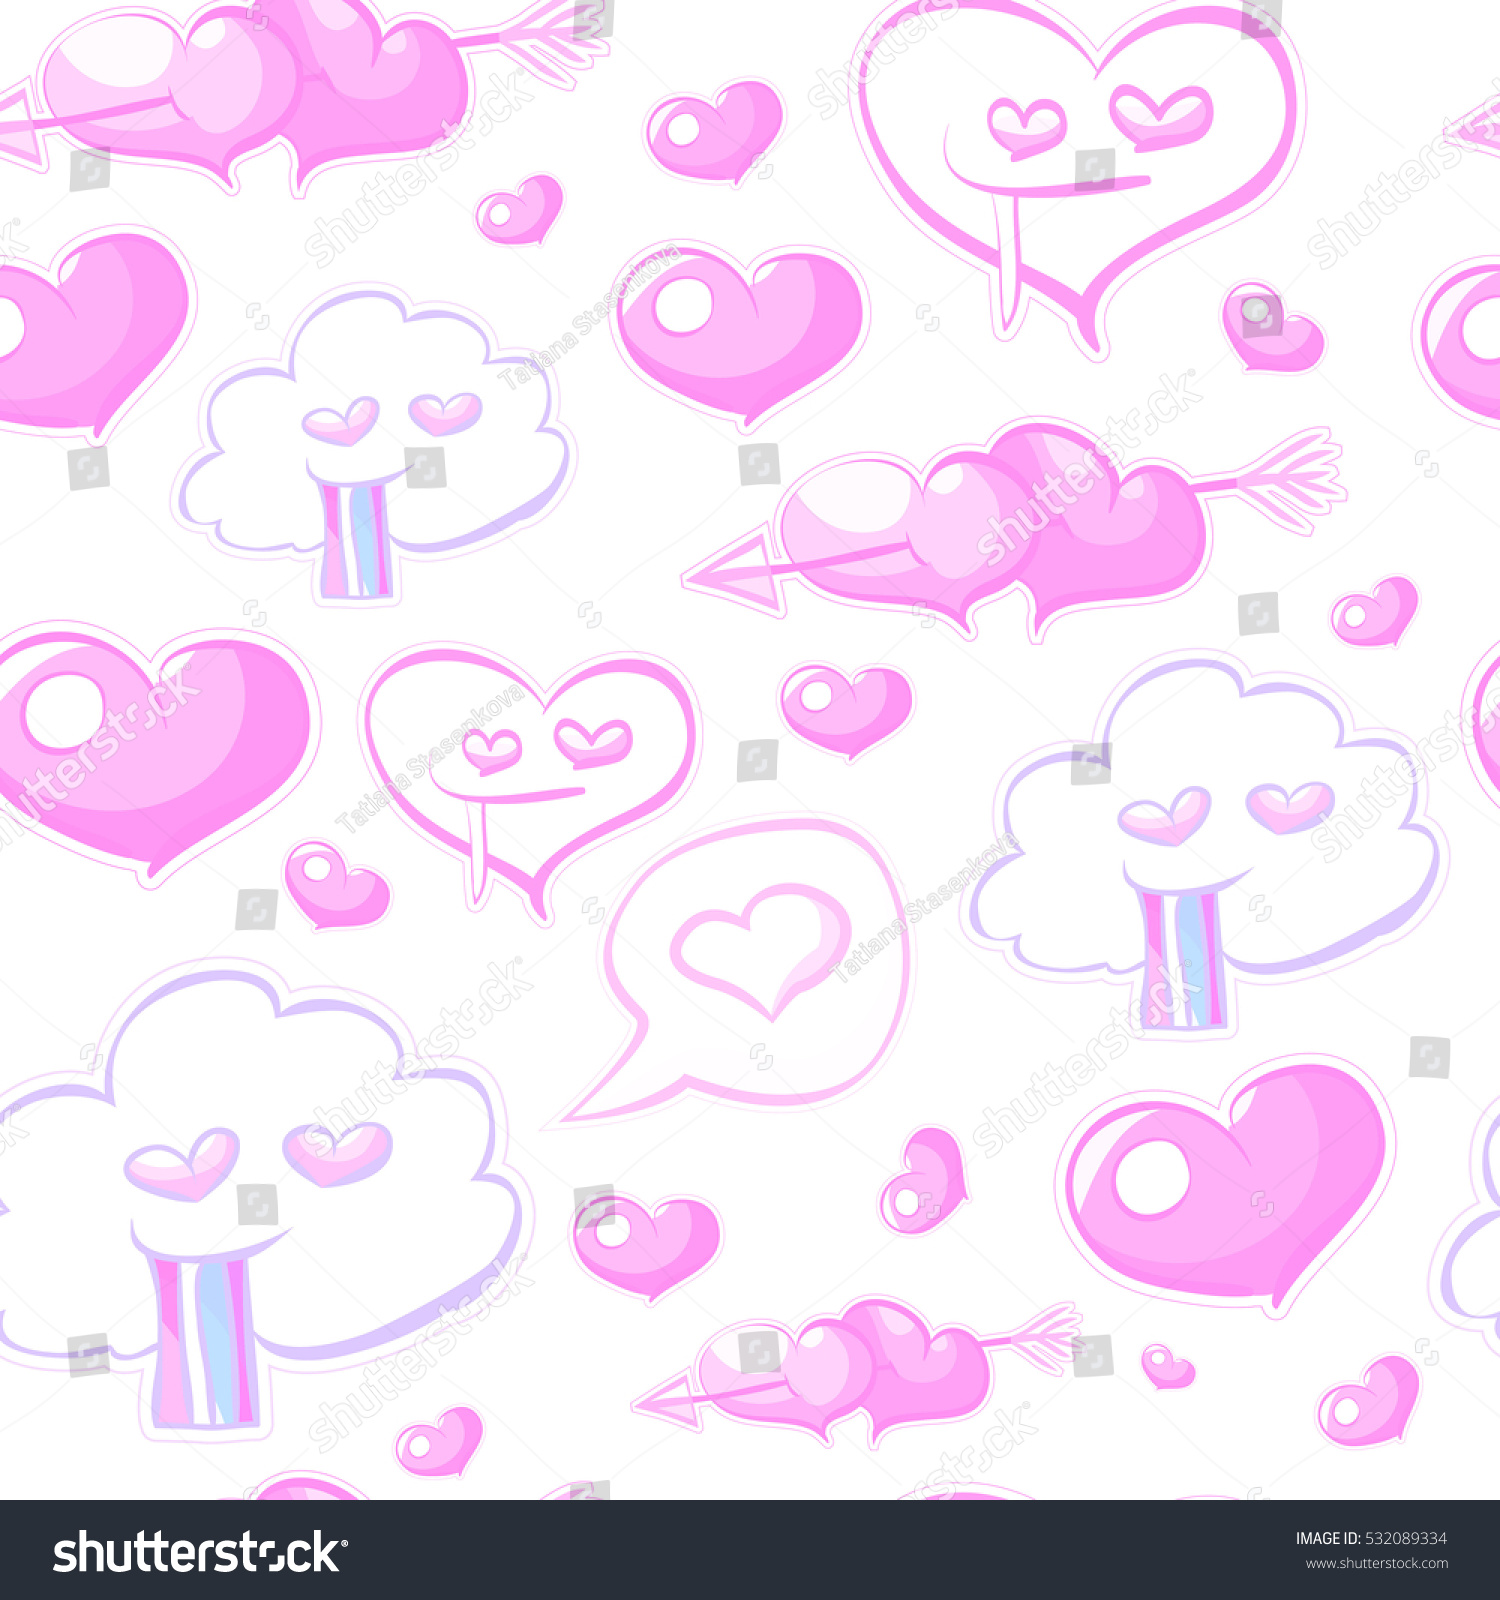 Crazy Doodle Love Seamless Pattern Colorful Stock Illustration